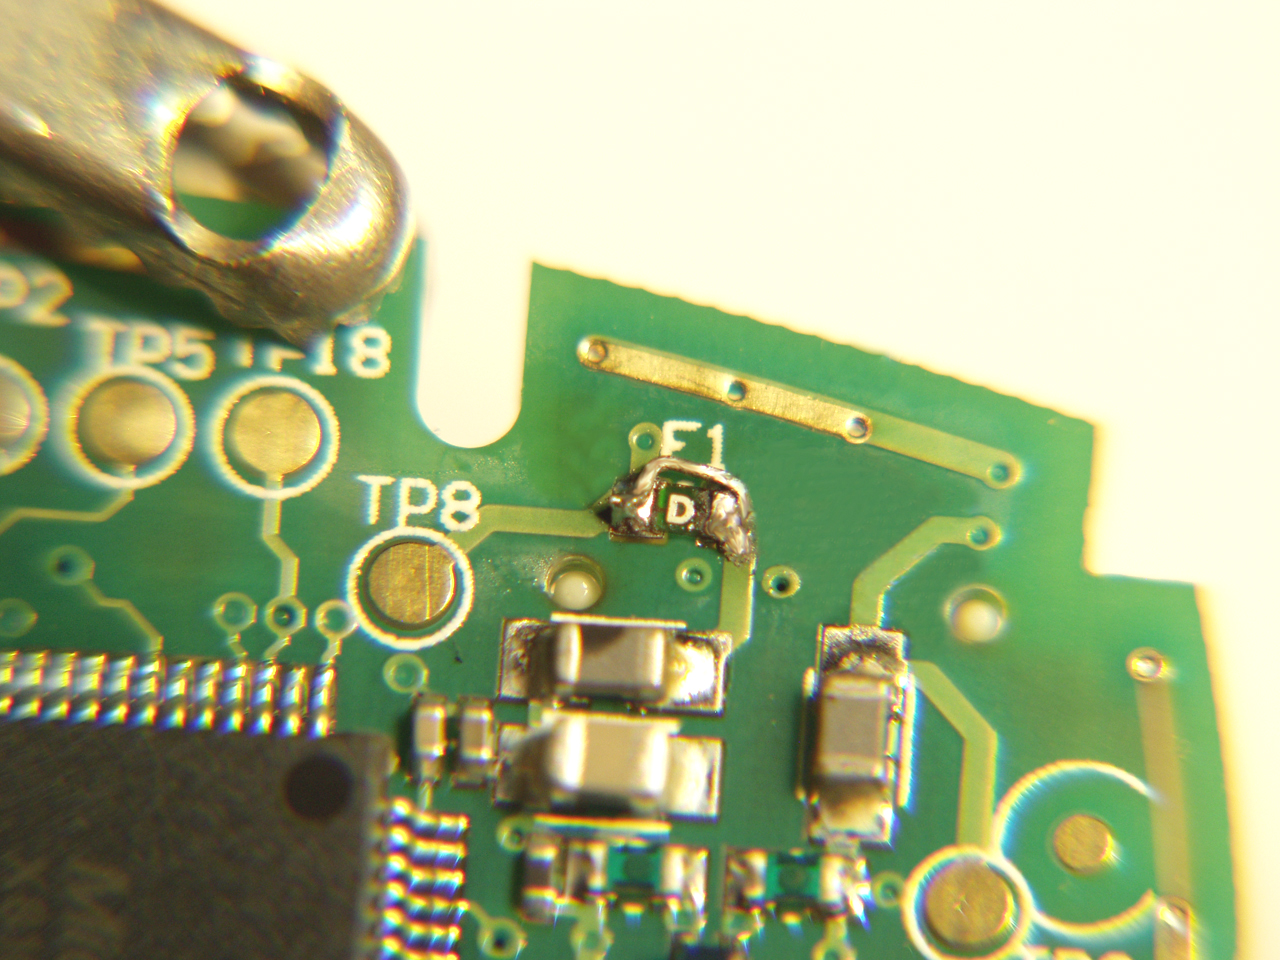 medium resolution of how to repair microsoft xbox 360 wireless gaming receiver forxbox 360 power supply fuse location